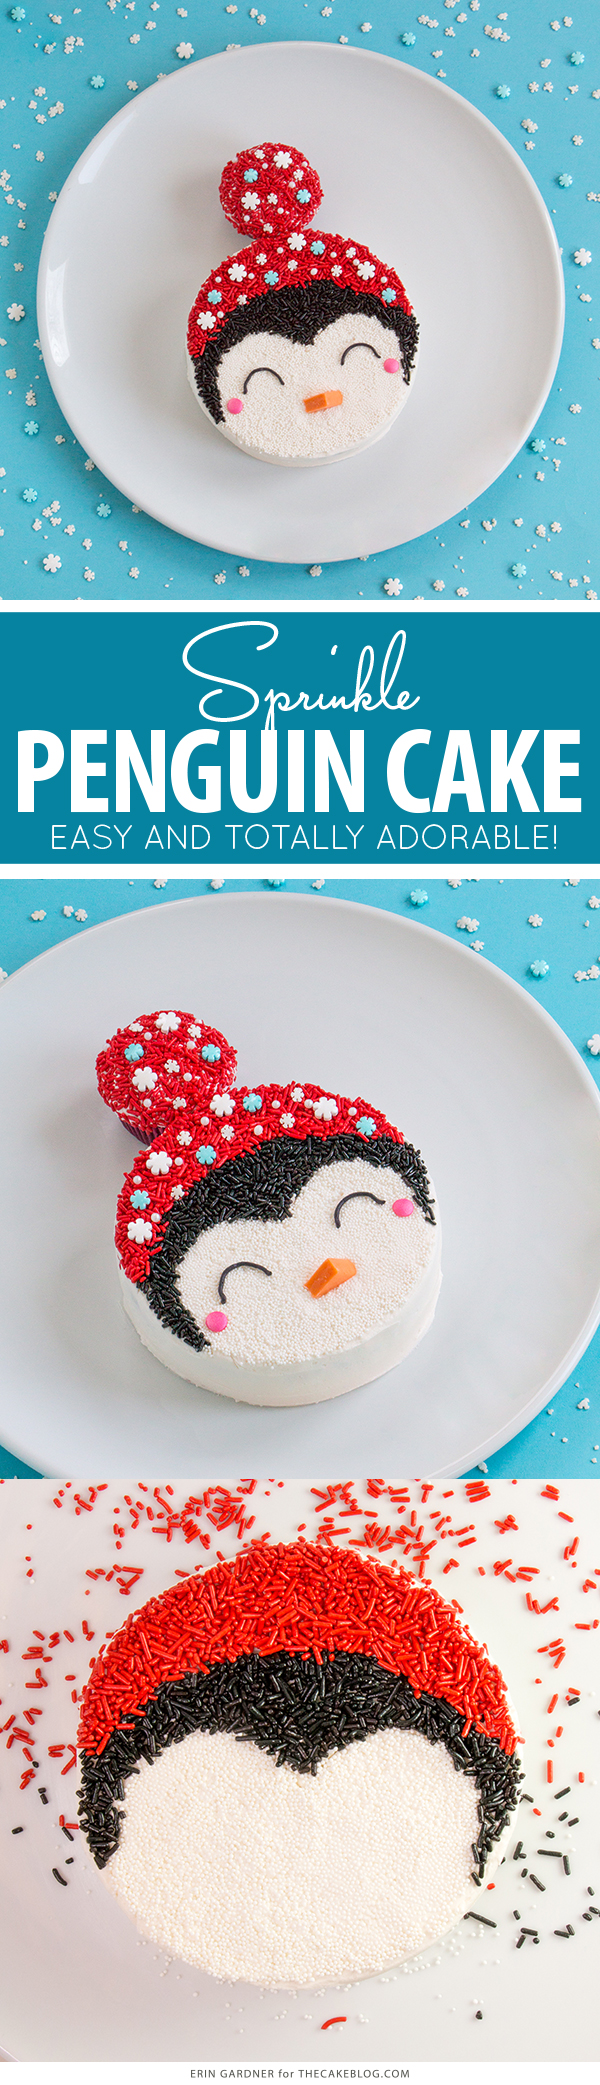 Penguin Cake - a sprinkle coated penguin cake too adorable for words | by Erin Gardner for TheCakeBlog.com